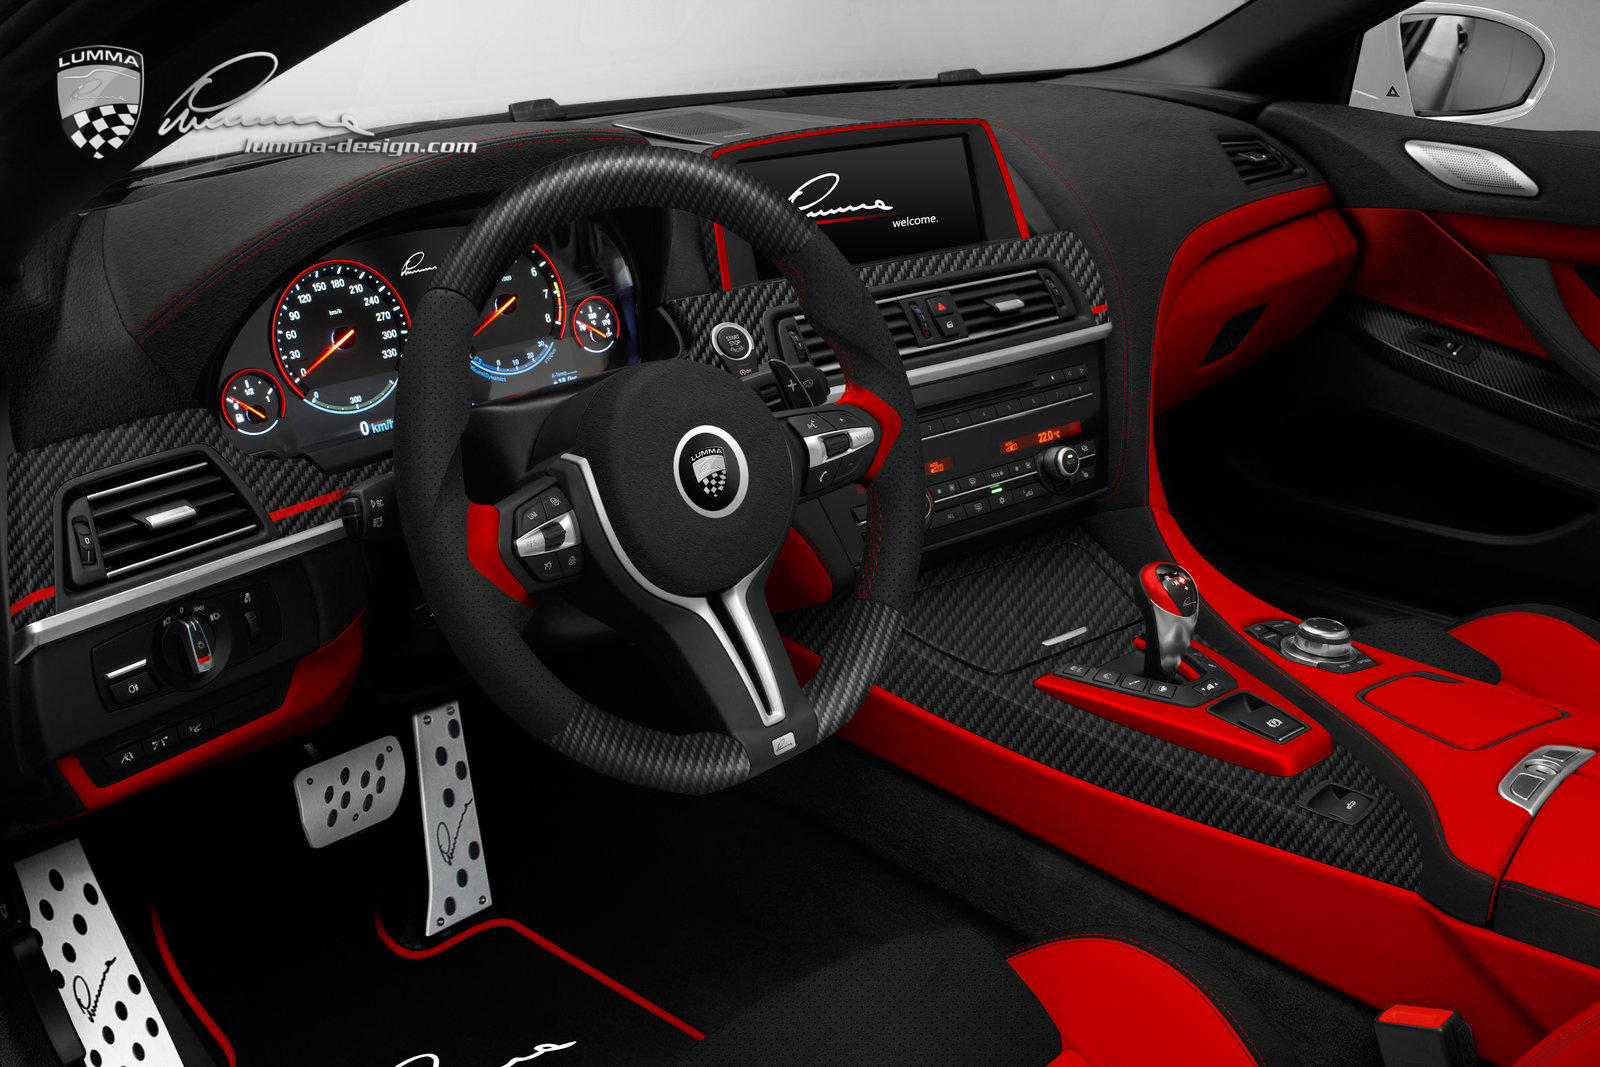 Lumma Clr 6 M Bmw M6 F13 According To Lumma Design